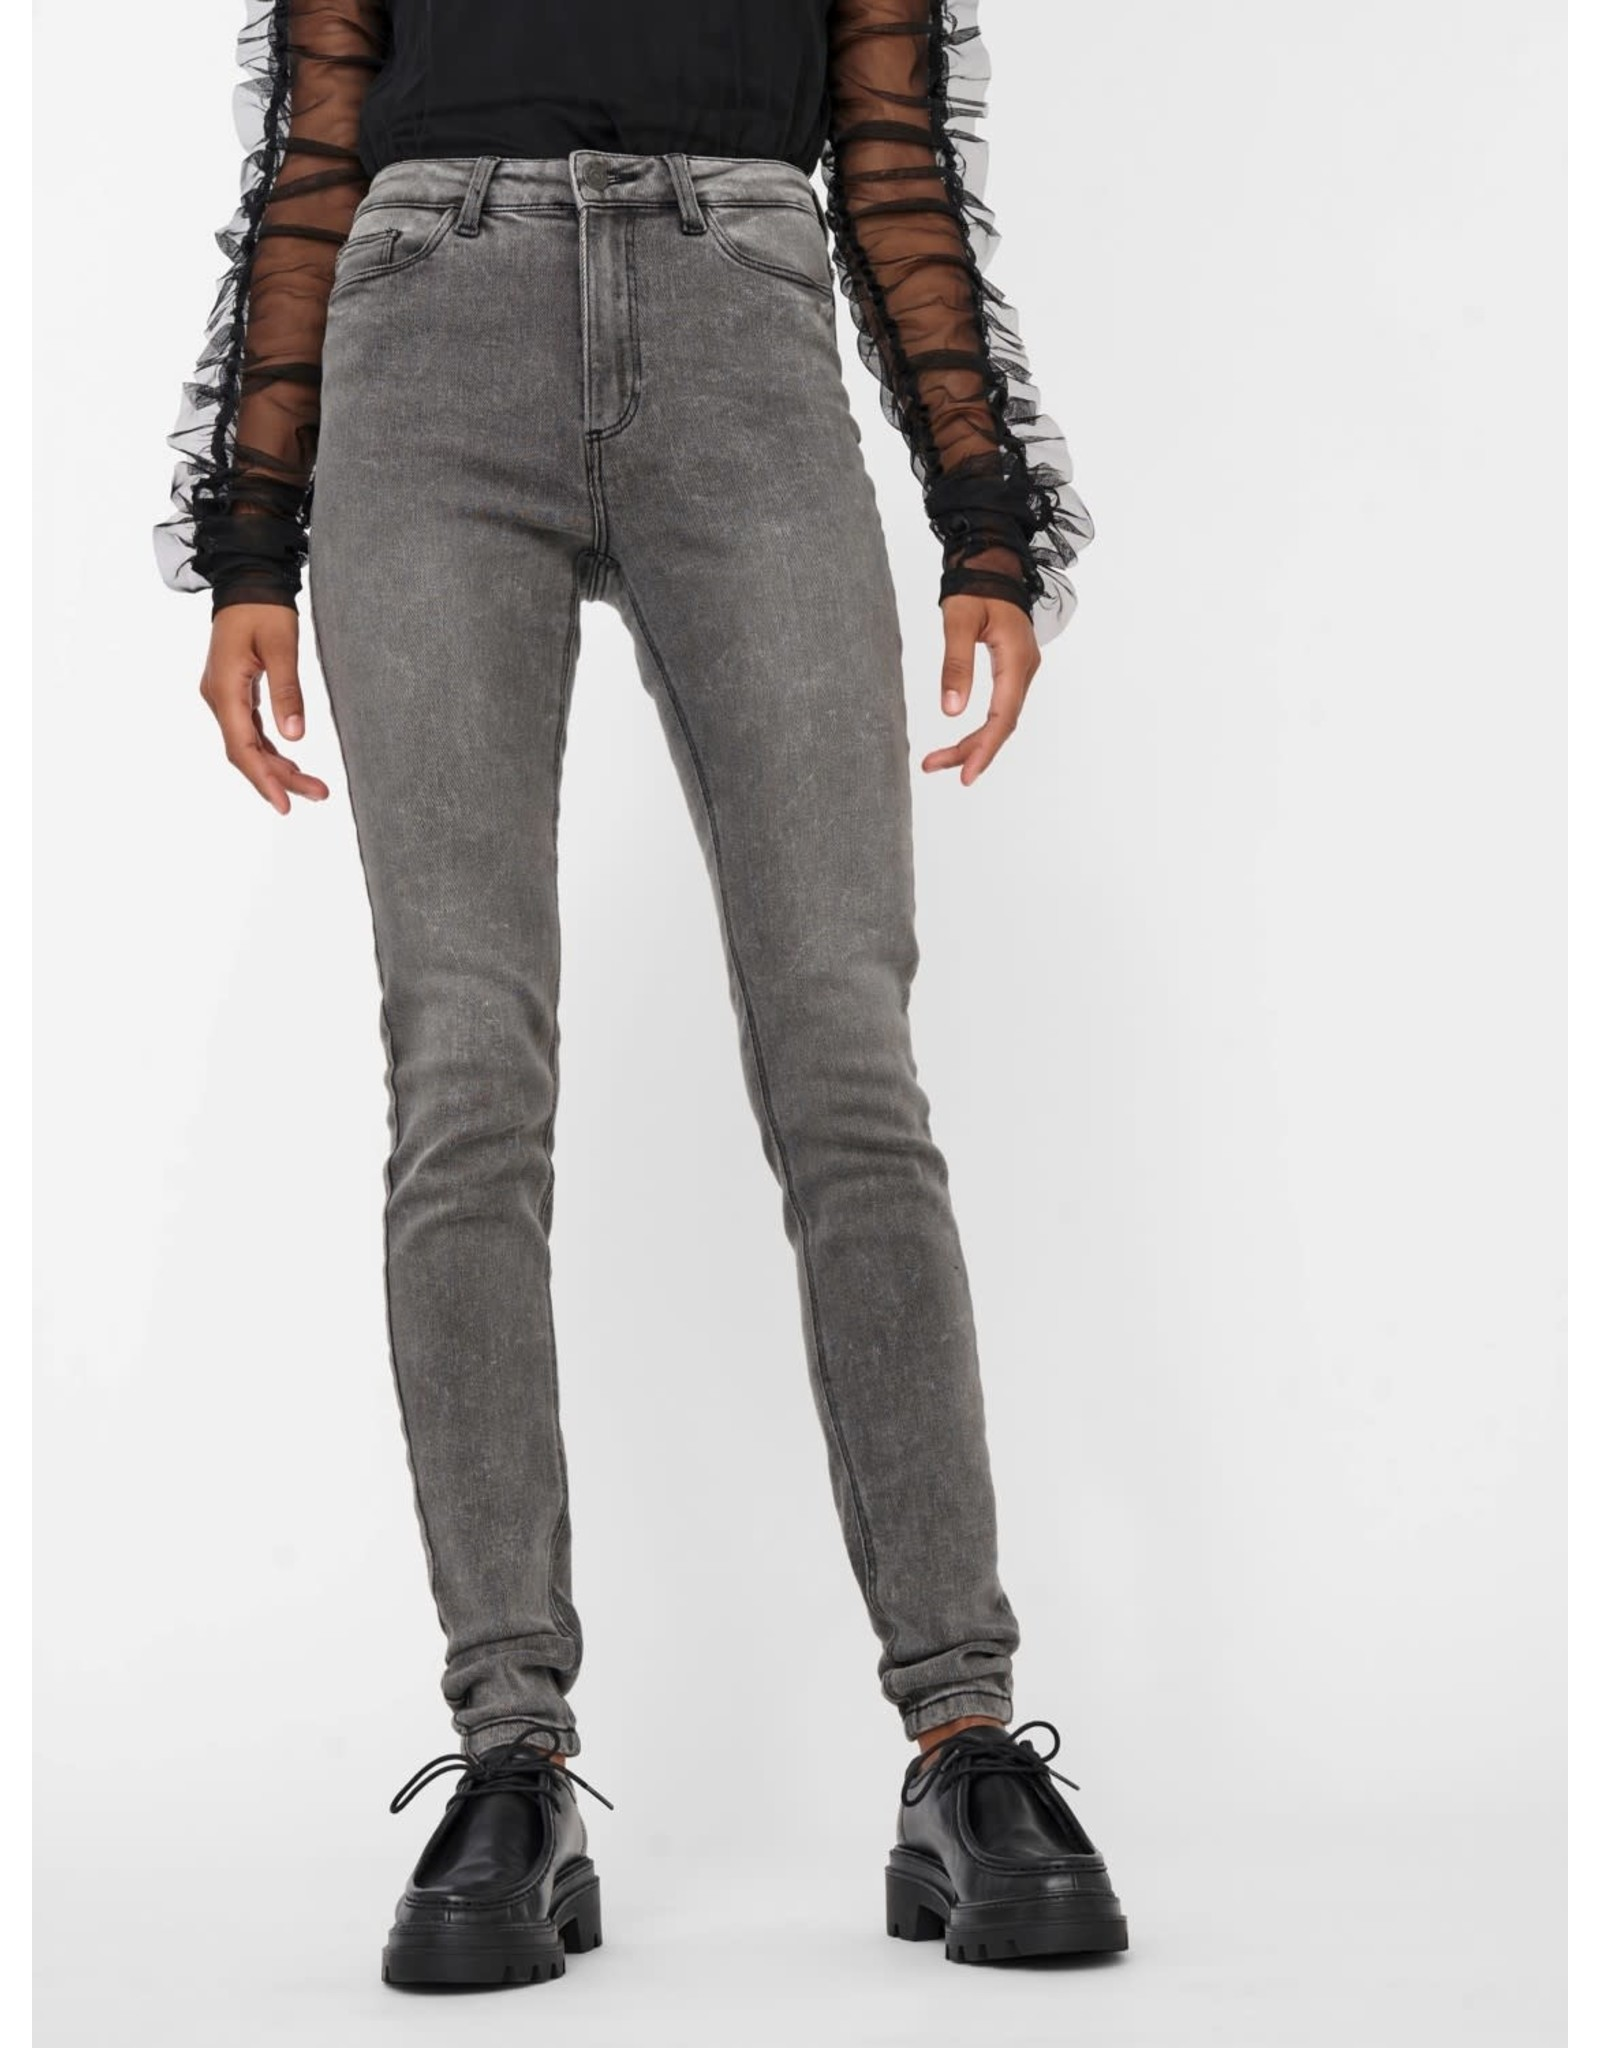 Noisy May Callie High Rise Skinny